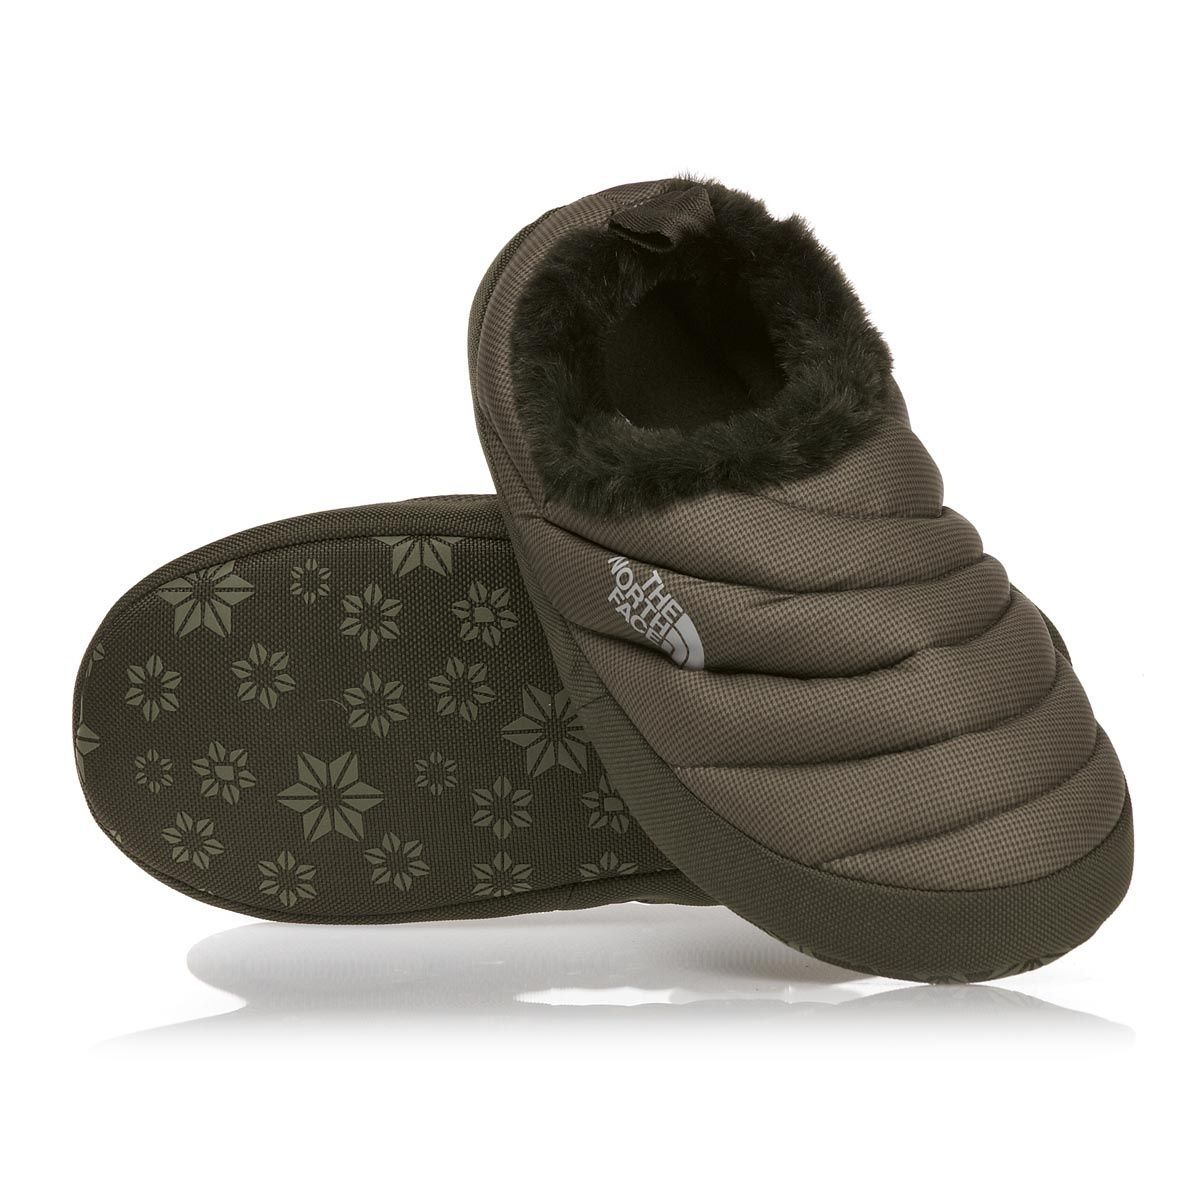 862d5626c85 The North Face Women s NSE Tent Mule Fur II Slippers - Brown ...